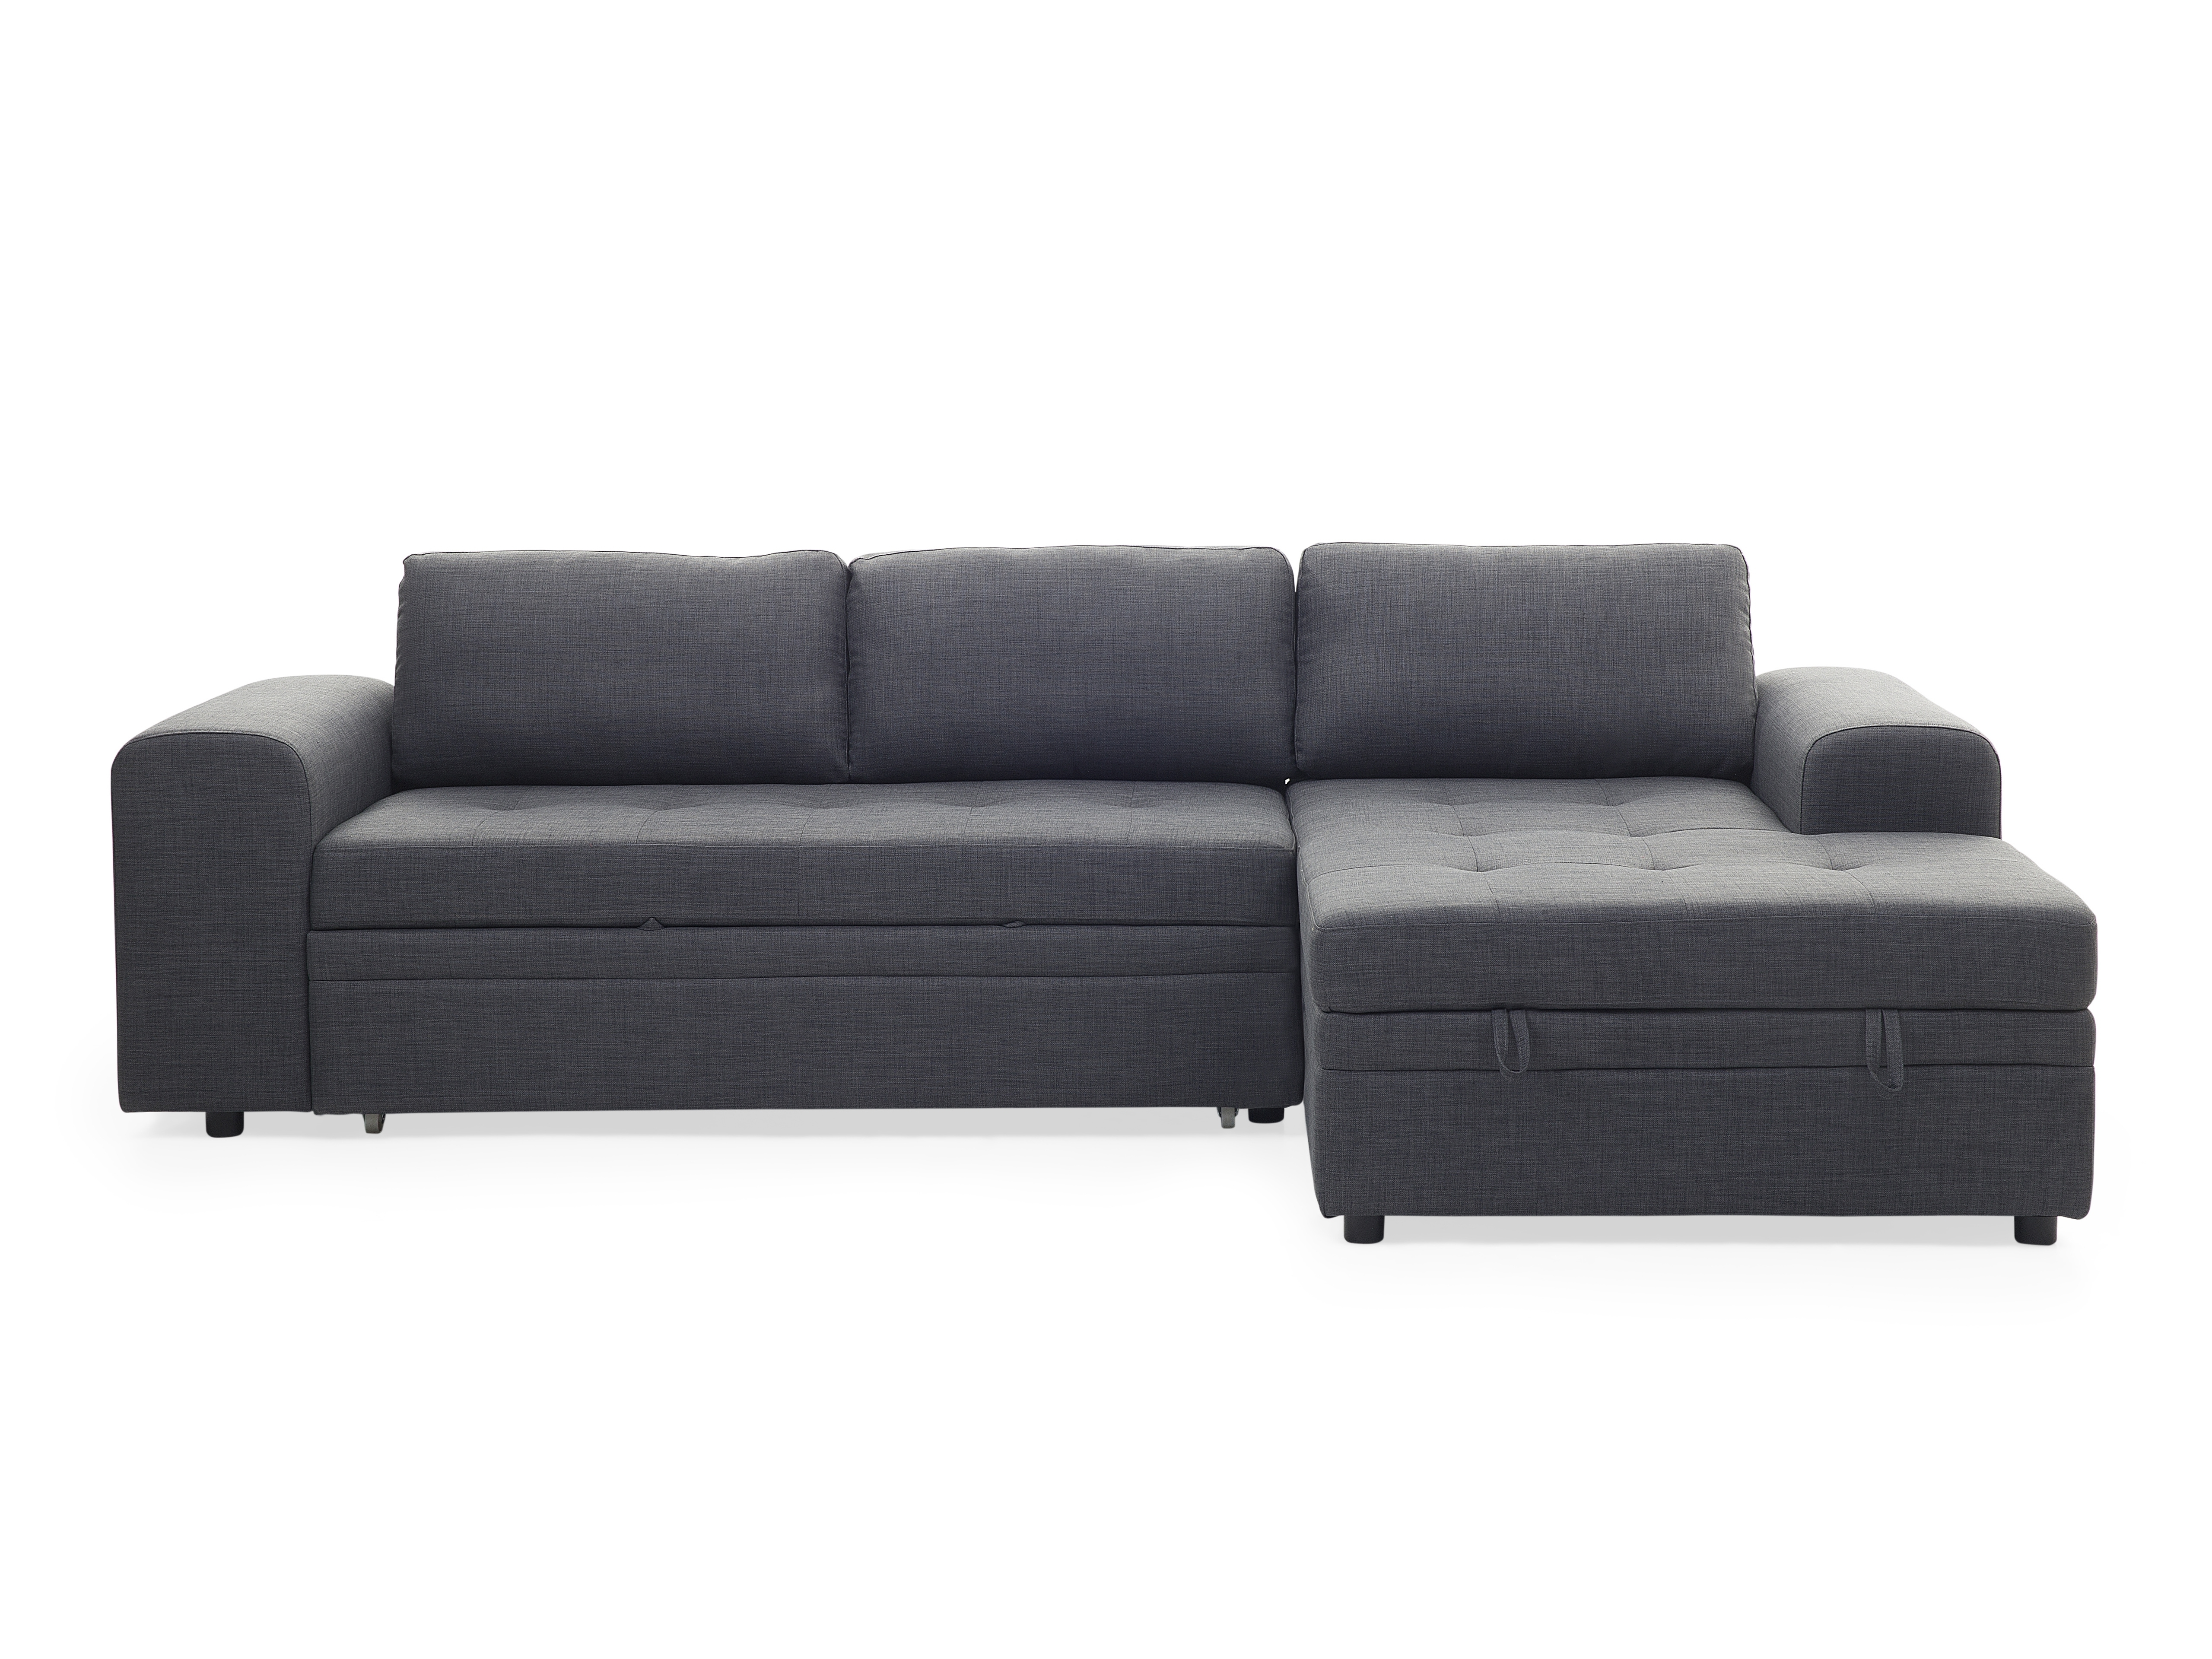 Sleeper Sofas With Chaise Within Most Recently Released Sectional Sleeper Sofa – Dark Gray Kiruna (View 12 of 15)